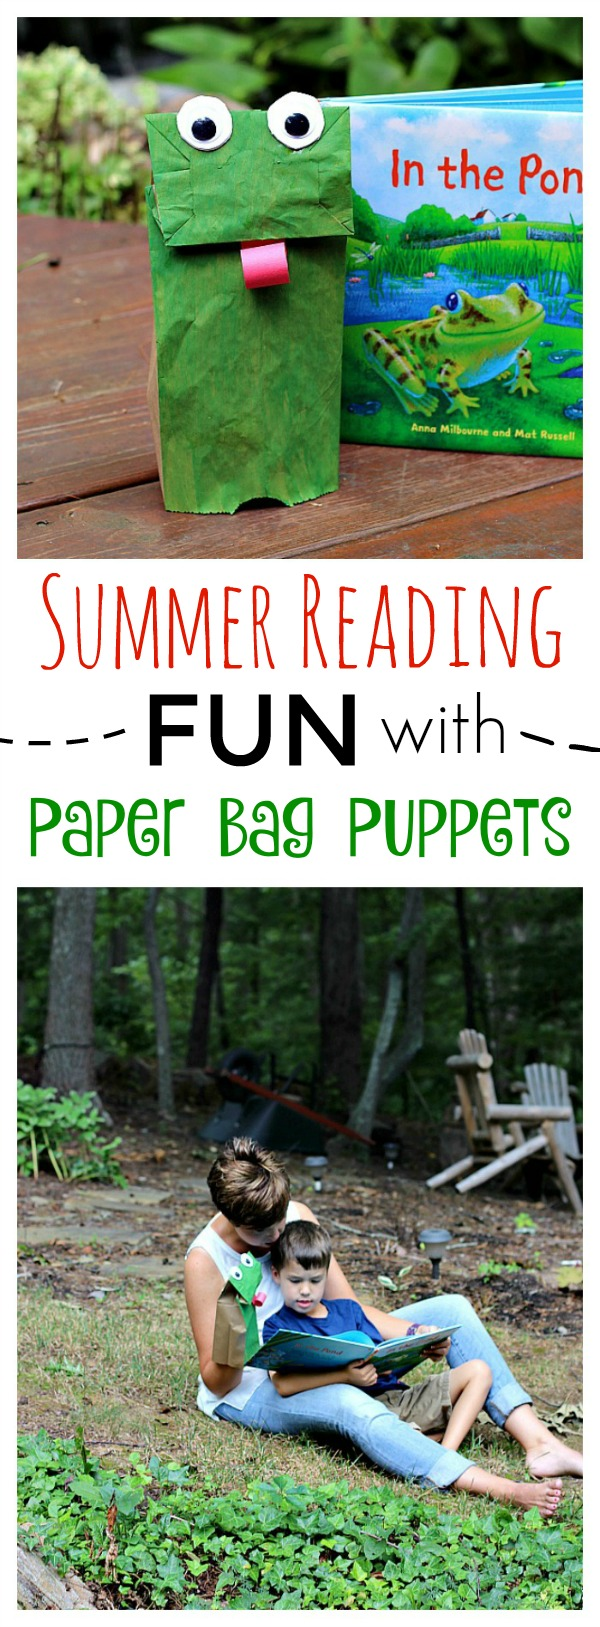 Summer Reading Fun with Paper Bag Puppets